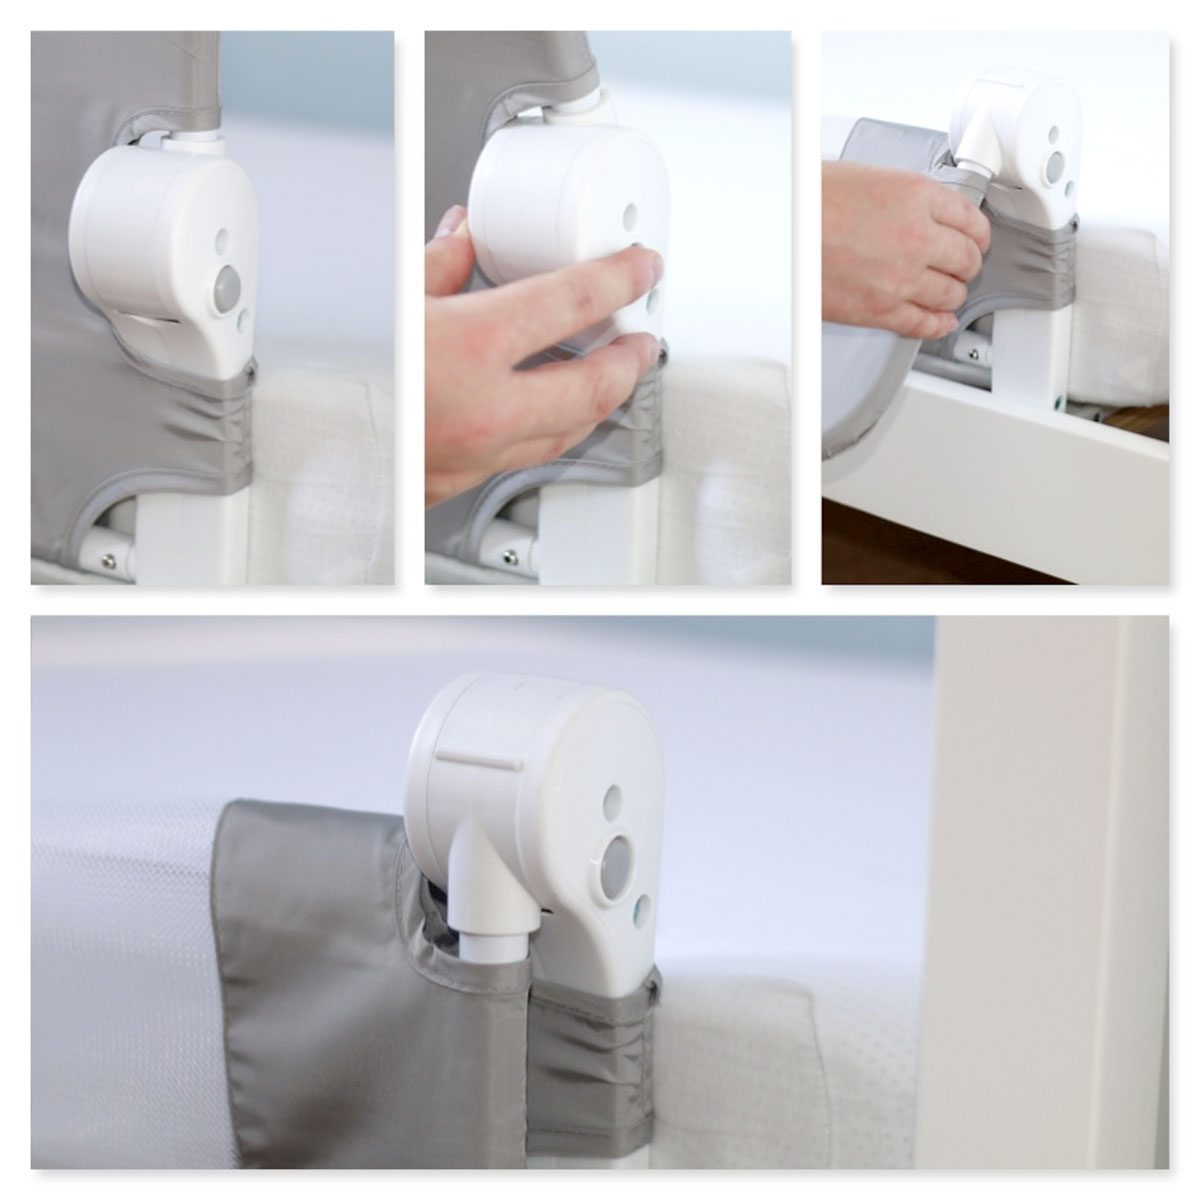 The folding mechanism is operate with the simple press of a button